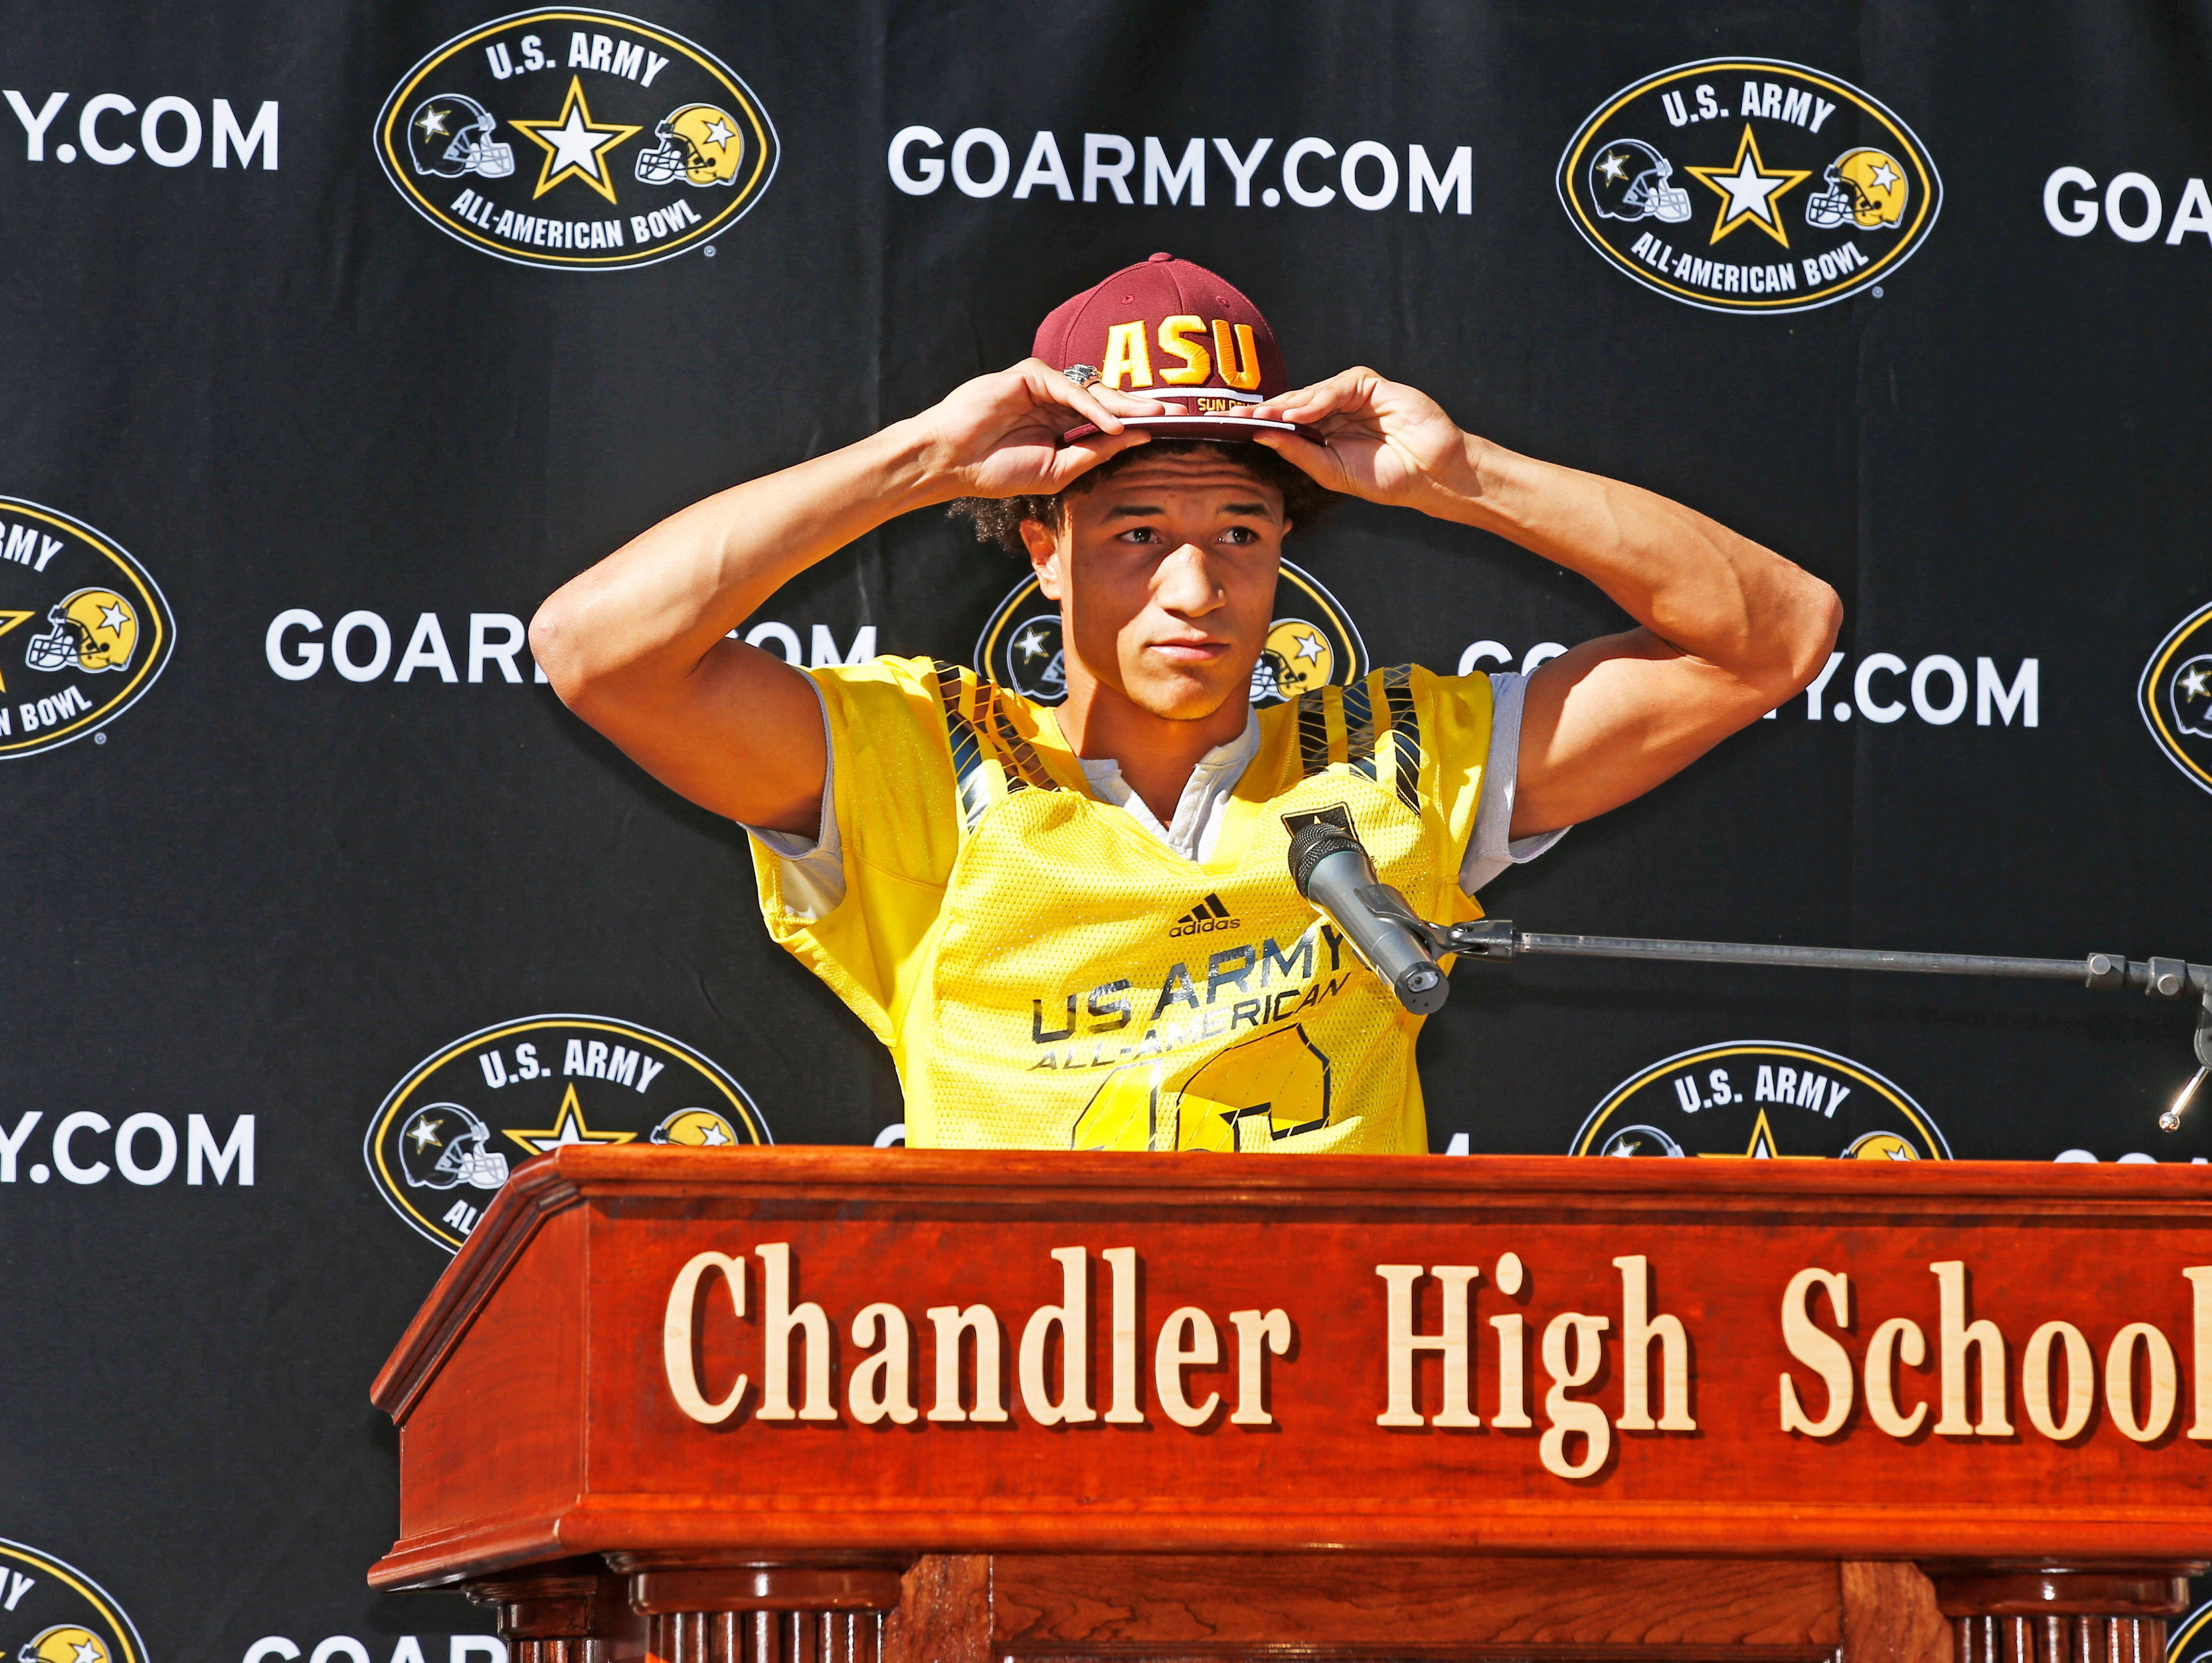 Chandler senior Chase Lucas and U.S. Army All-American announced he will attend Arizona State during a news conference at Chandler High School on Nov. 9, 2015.